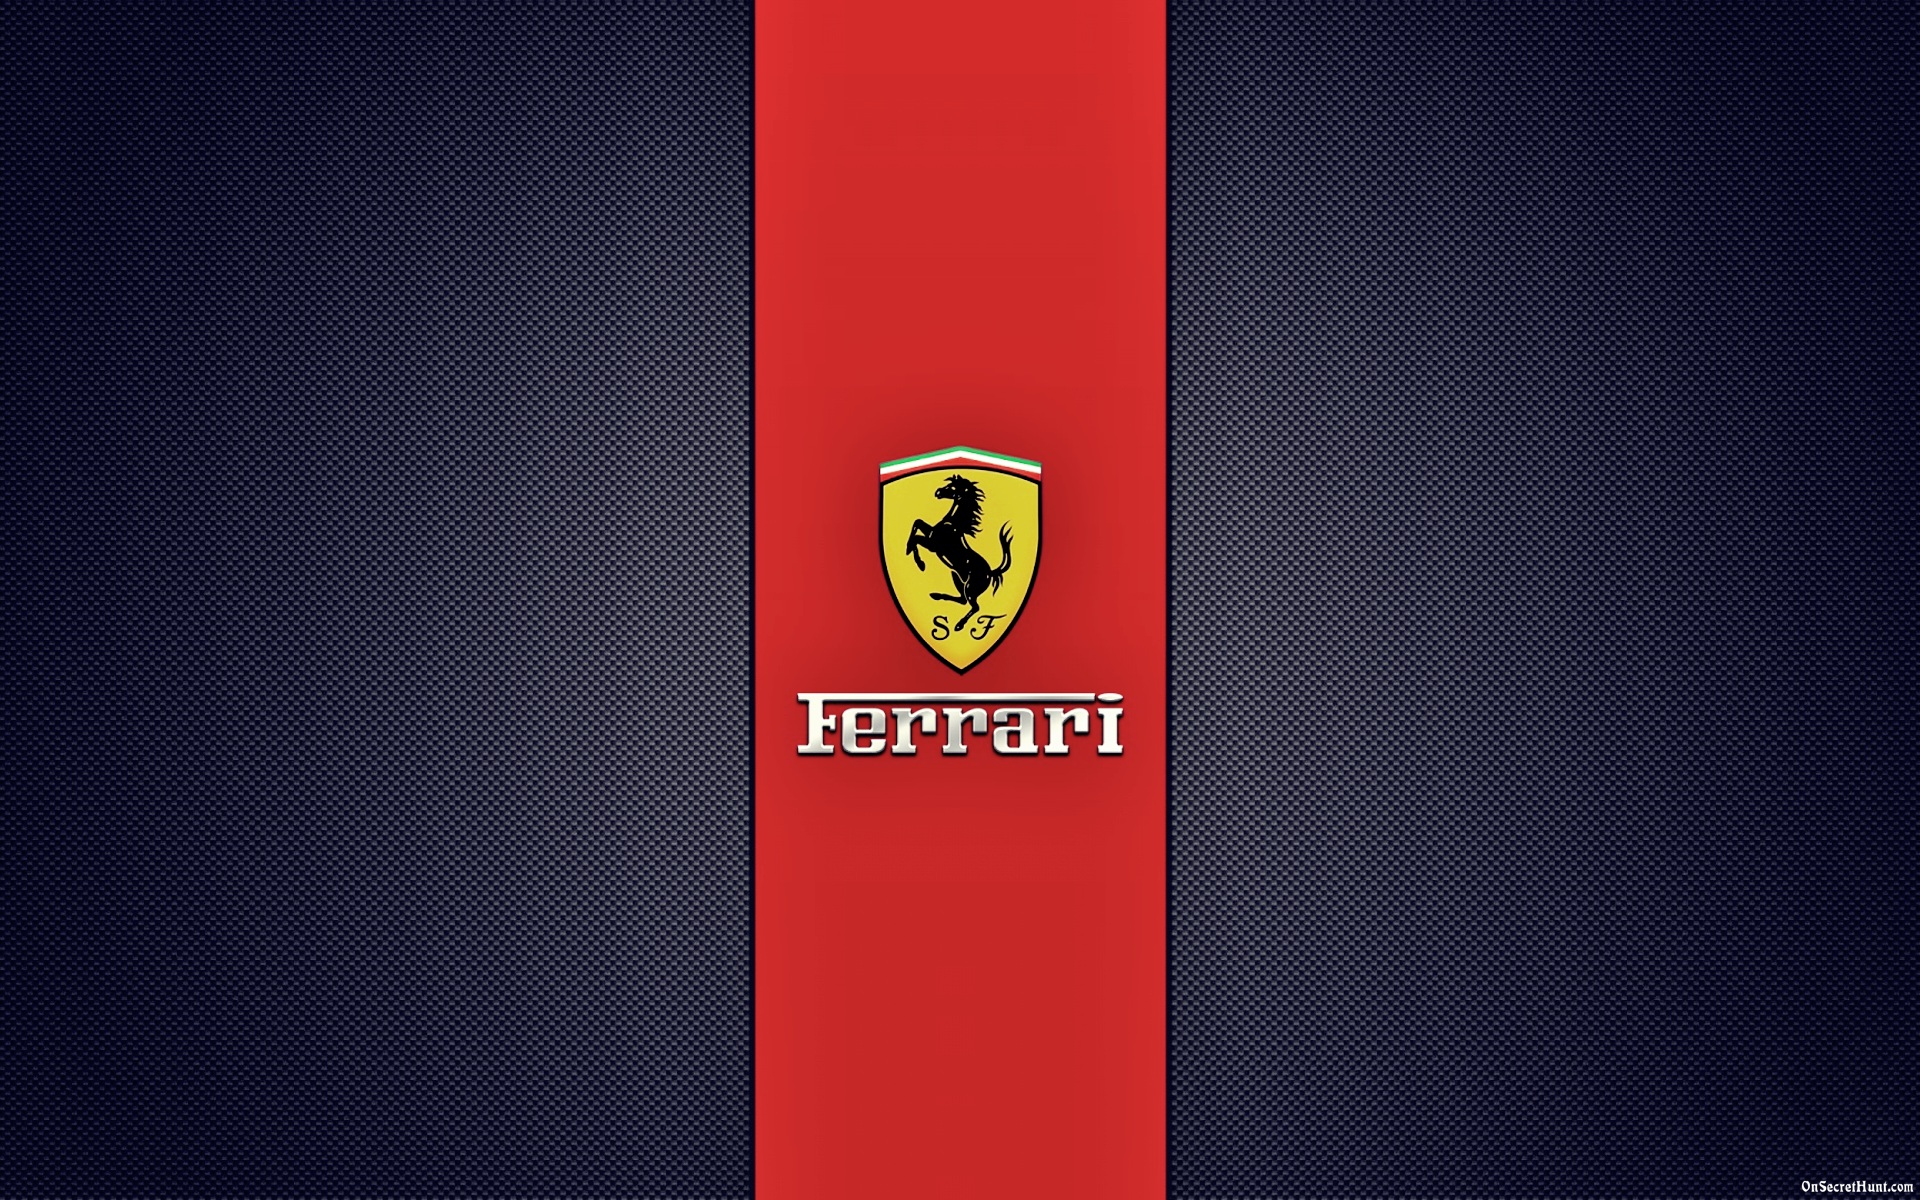 Ferrari Logo Wallpapers - WallpaperSafari